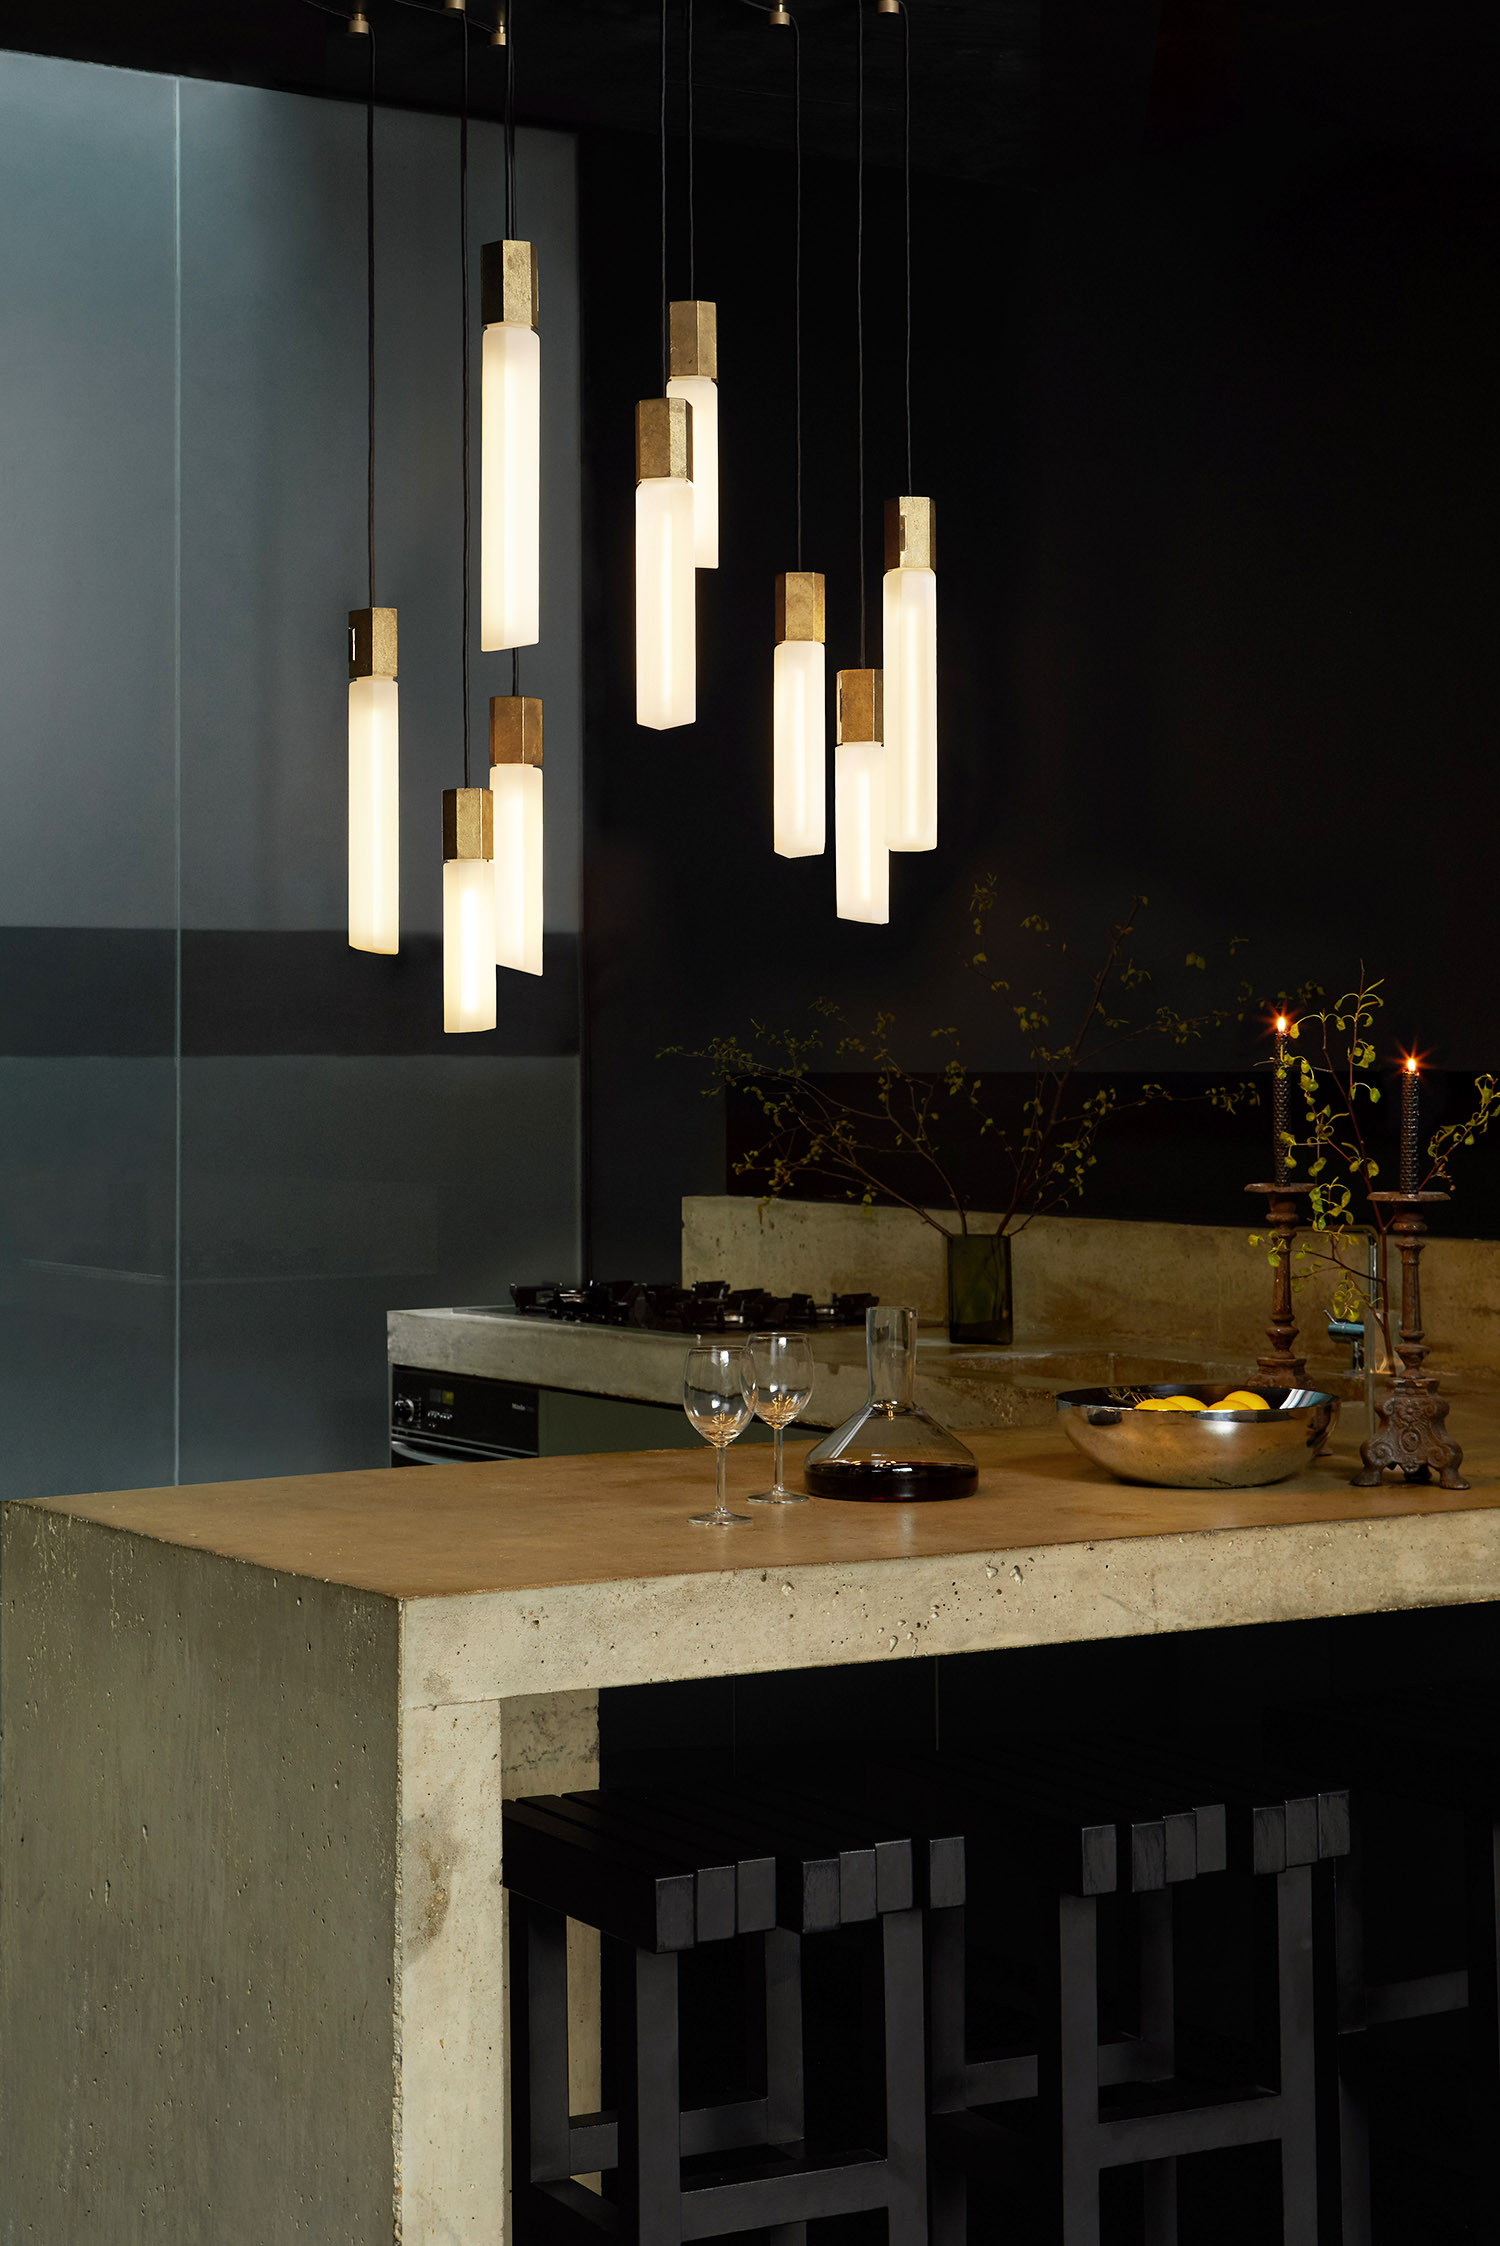 Basalt Ceiling Lamp Large - <p>Inspired by the thousands of extruded basalt columns that make up the Giant's Causeway, Basalt unites sand-cast solid brass and mouth-blown glass to evoke nature's magnitude. The Basalt Ceiling Light comprises three translucent matte borosilicate glass bulbs and textured pendants, each in their own dramatic size and length - suspended from an elegantly polished brass ceiling rose. </p> <p>15 Light Pieces.</p>  | Matter of Stuff